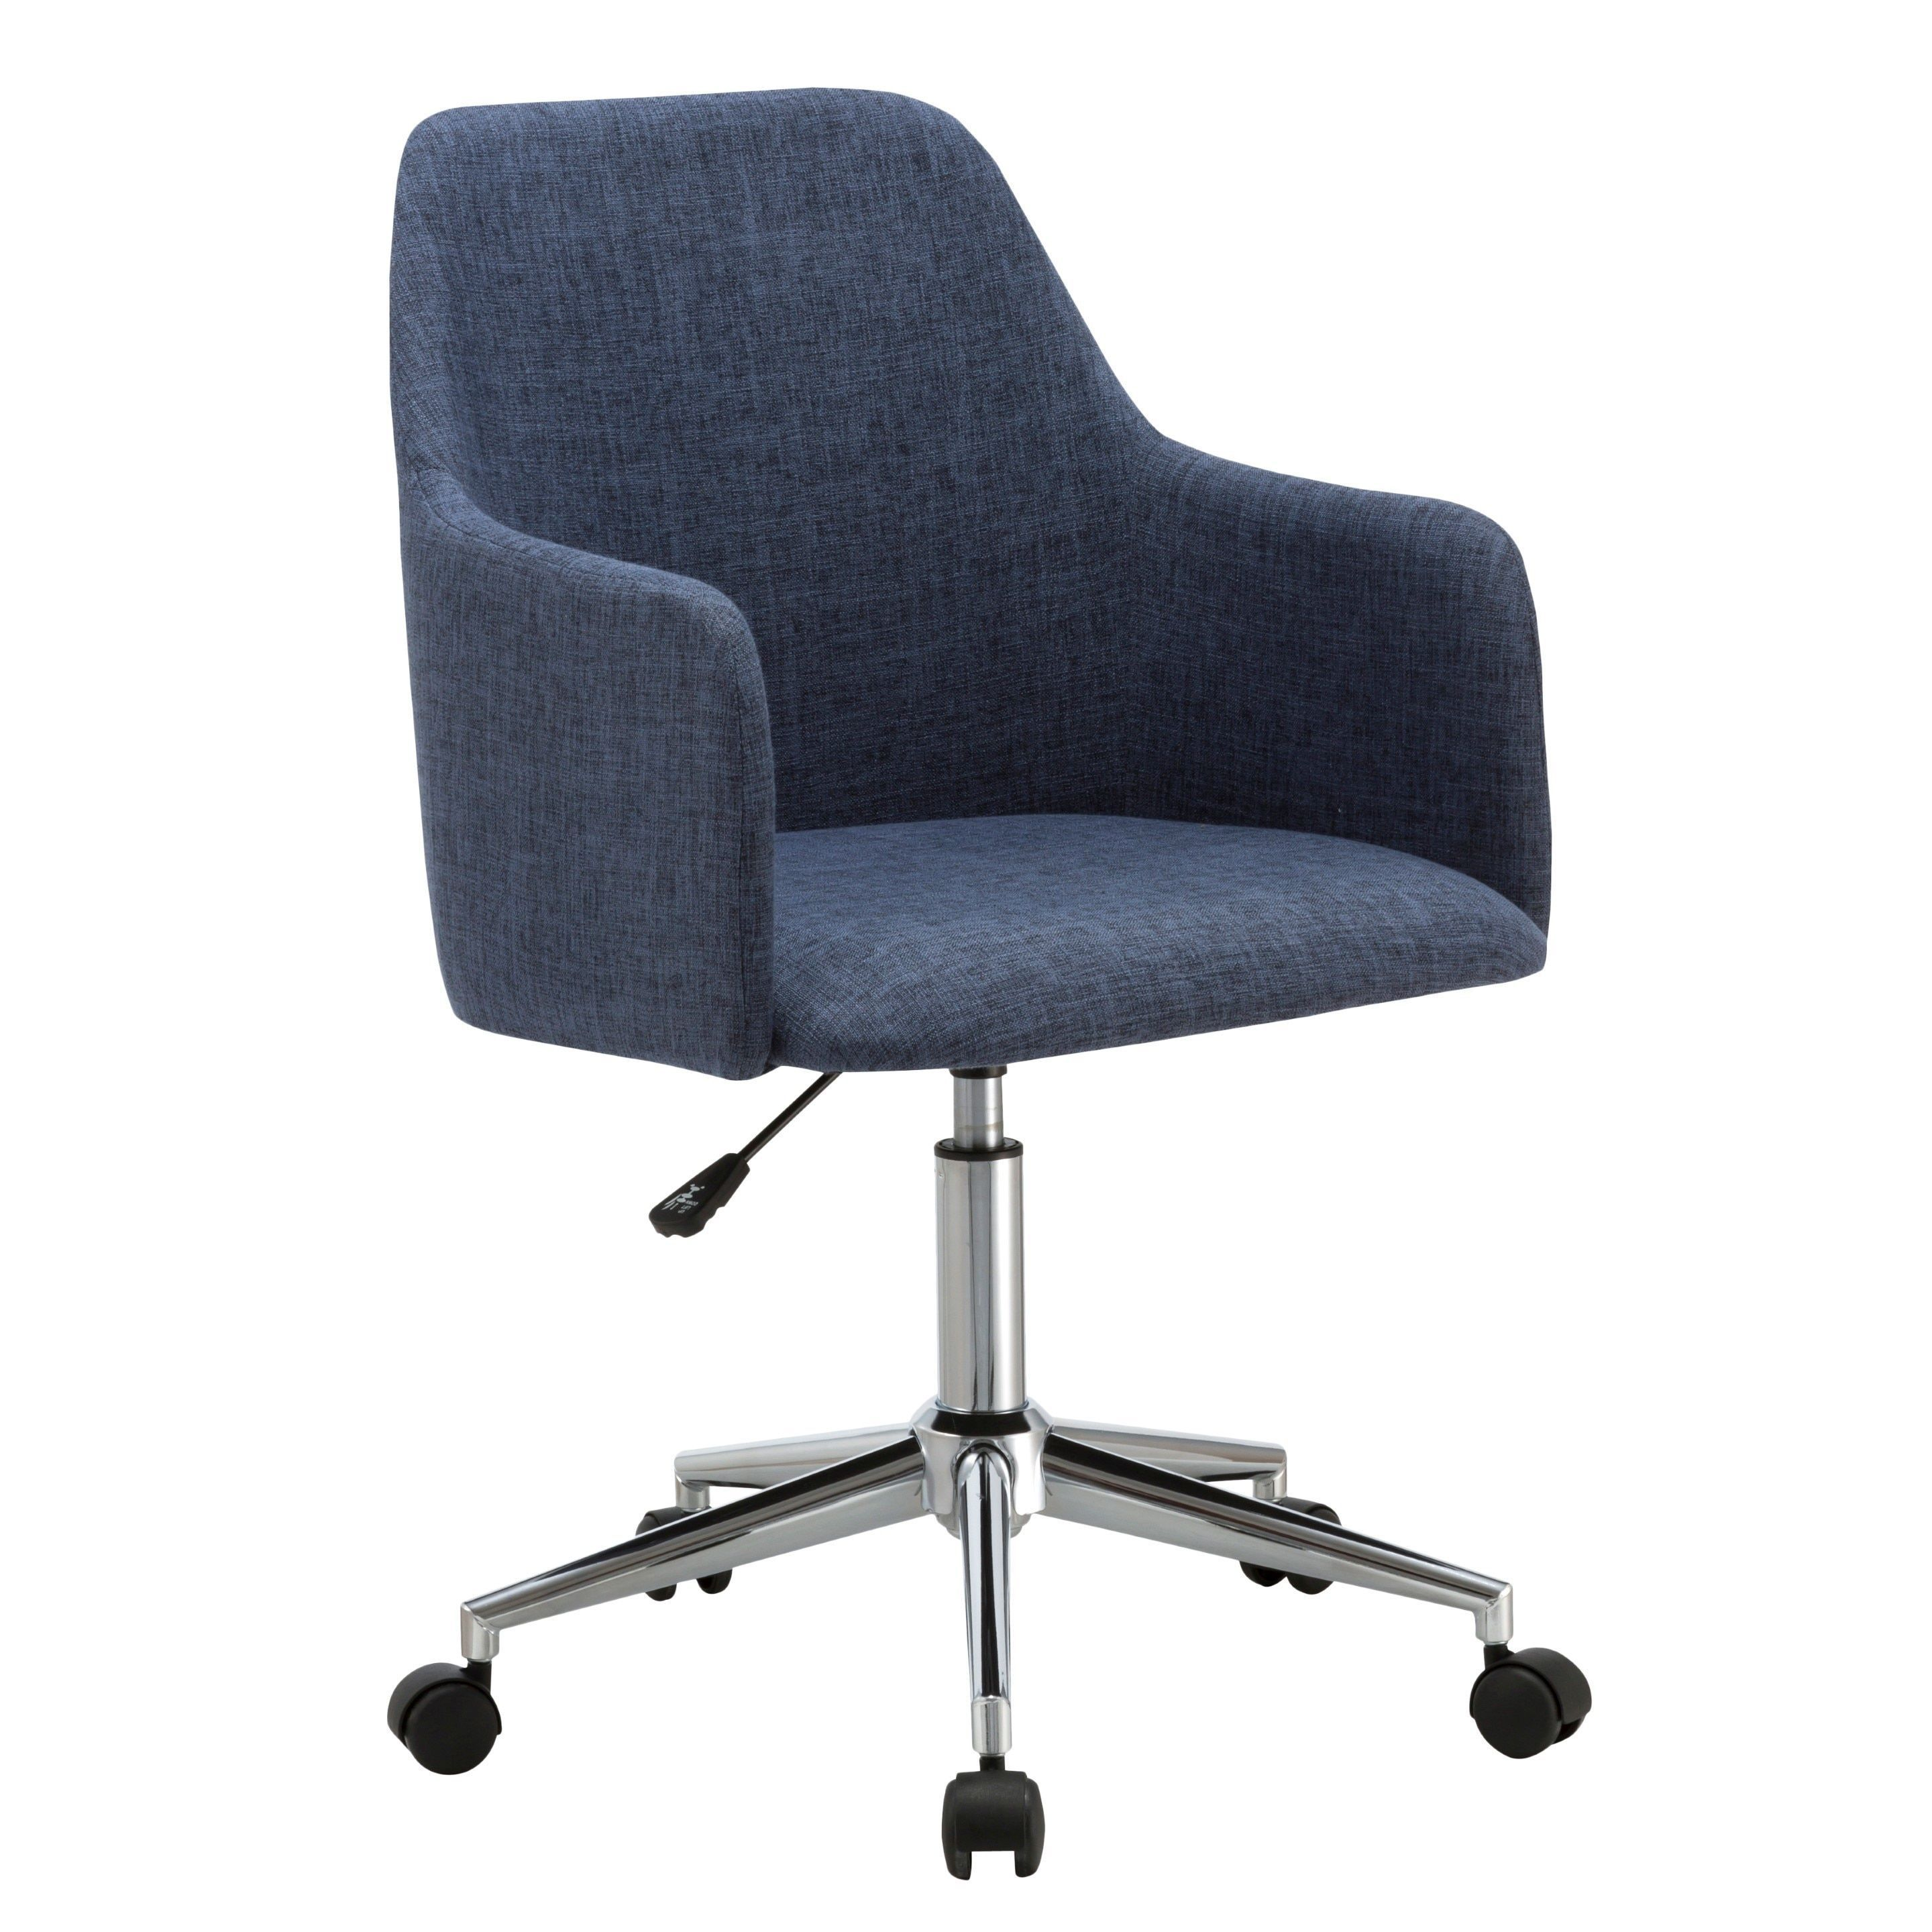 Online Shopping Bedding Furniture Electronics Jewelry Clothing More Home Office Chairs Furniture Chair